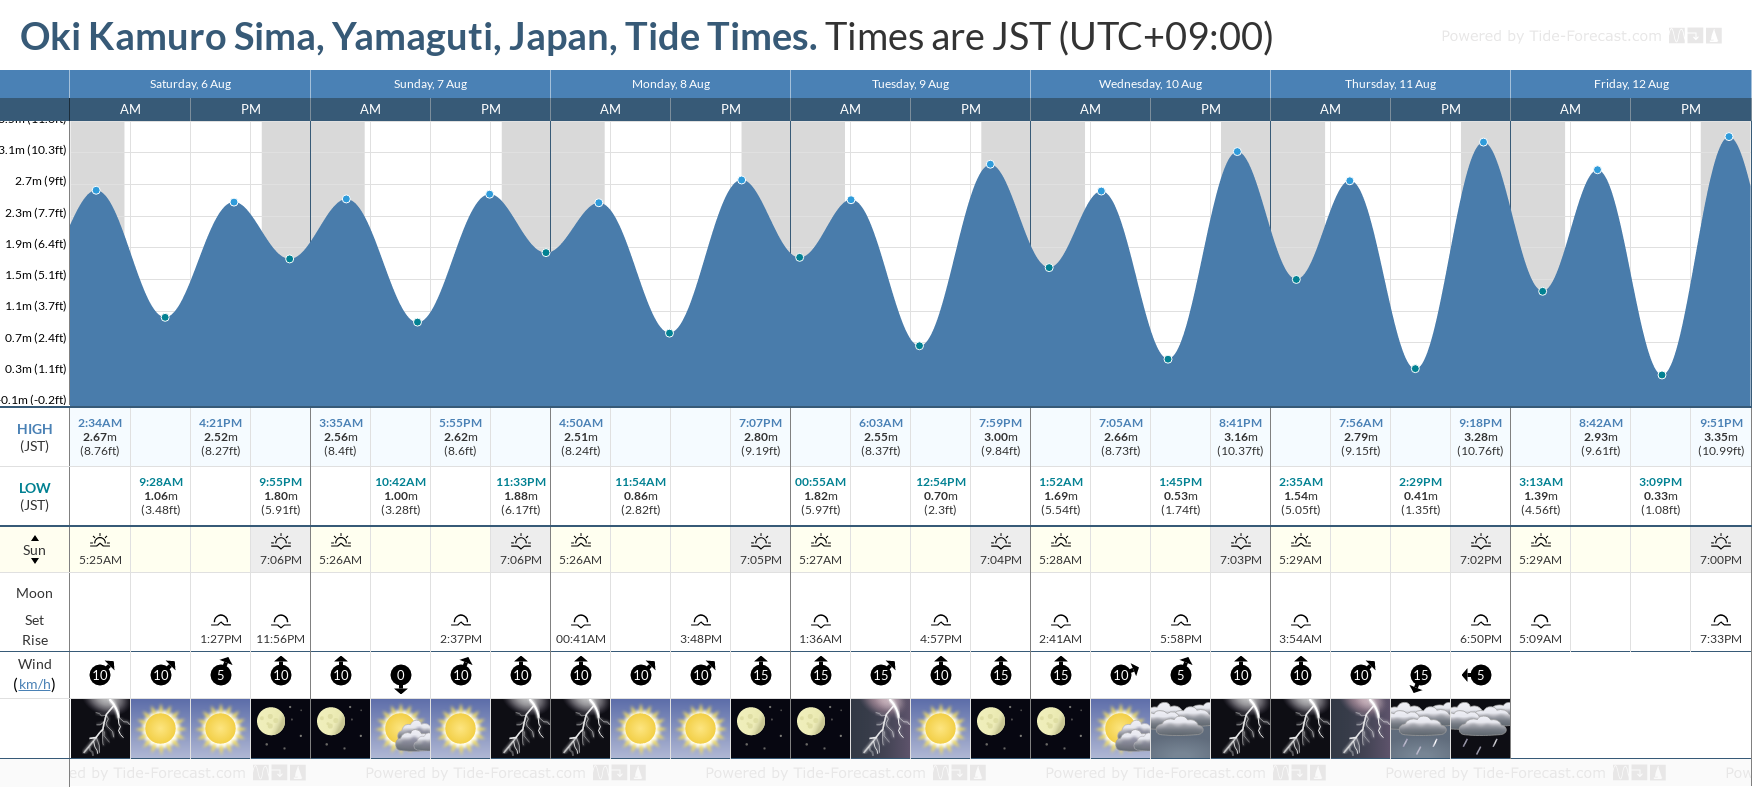 Oki Kamuro Sima, Yamaguti, Japan Tide Chart including high and low tide tide times for the next 7 days